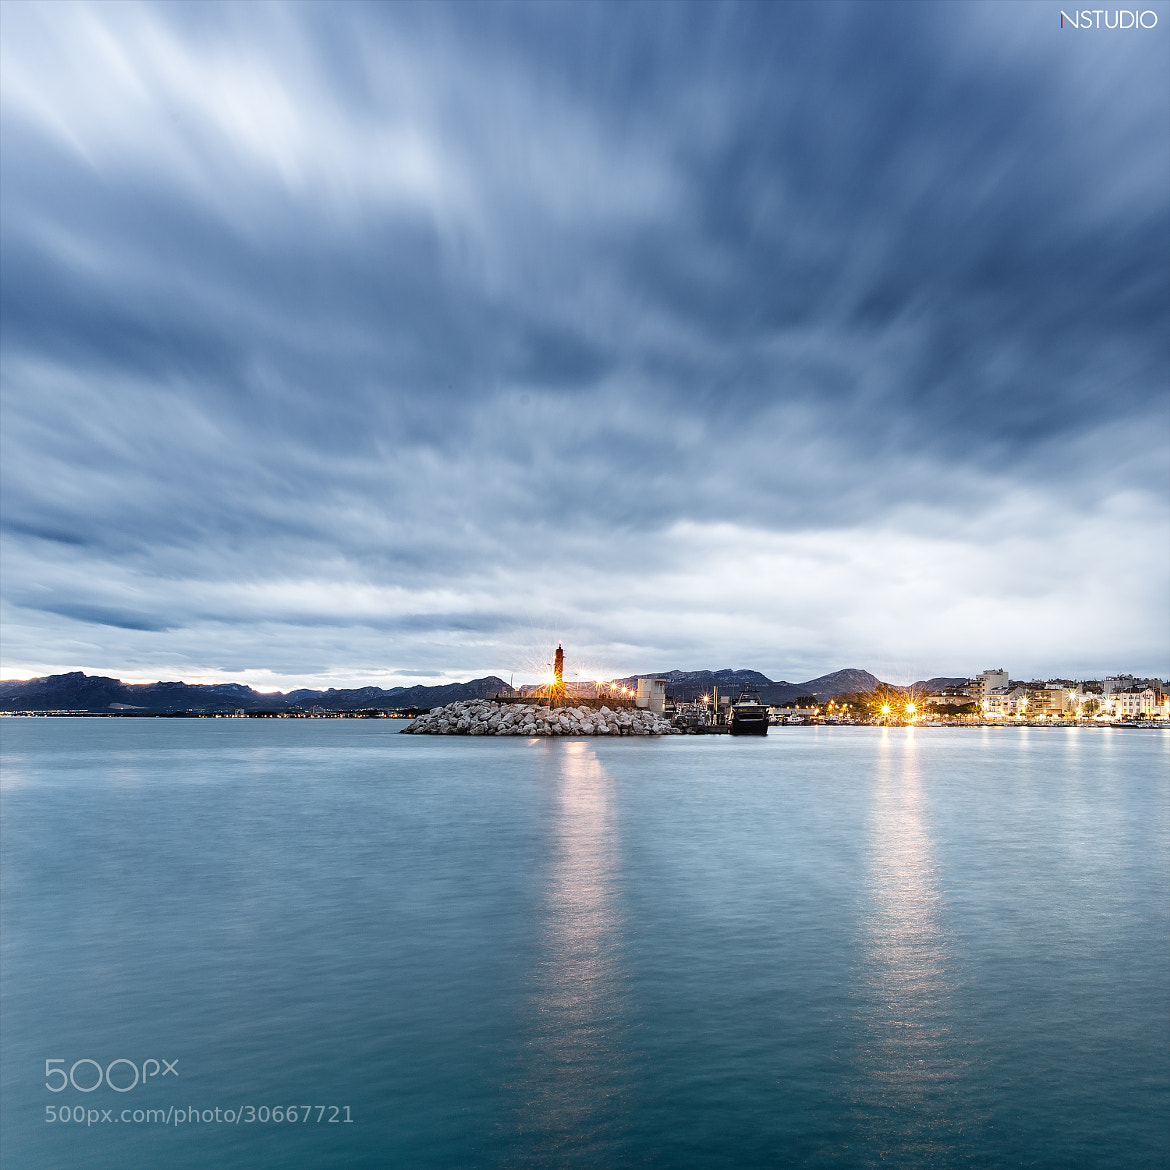 Photograph Cambrils - Harbor - Lighthouse II by NSTUDIO PHOTO on 500px